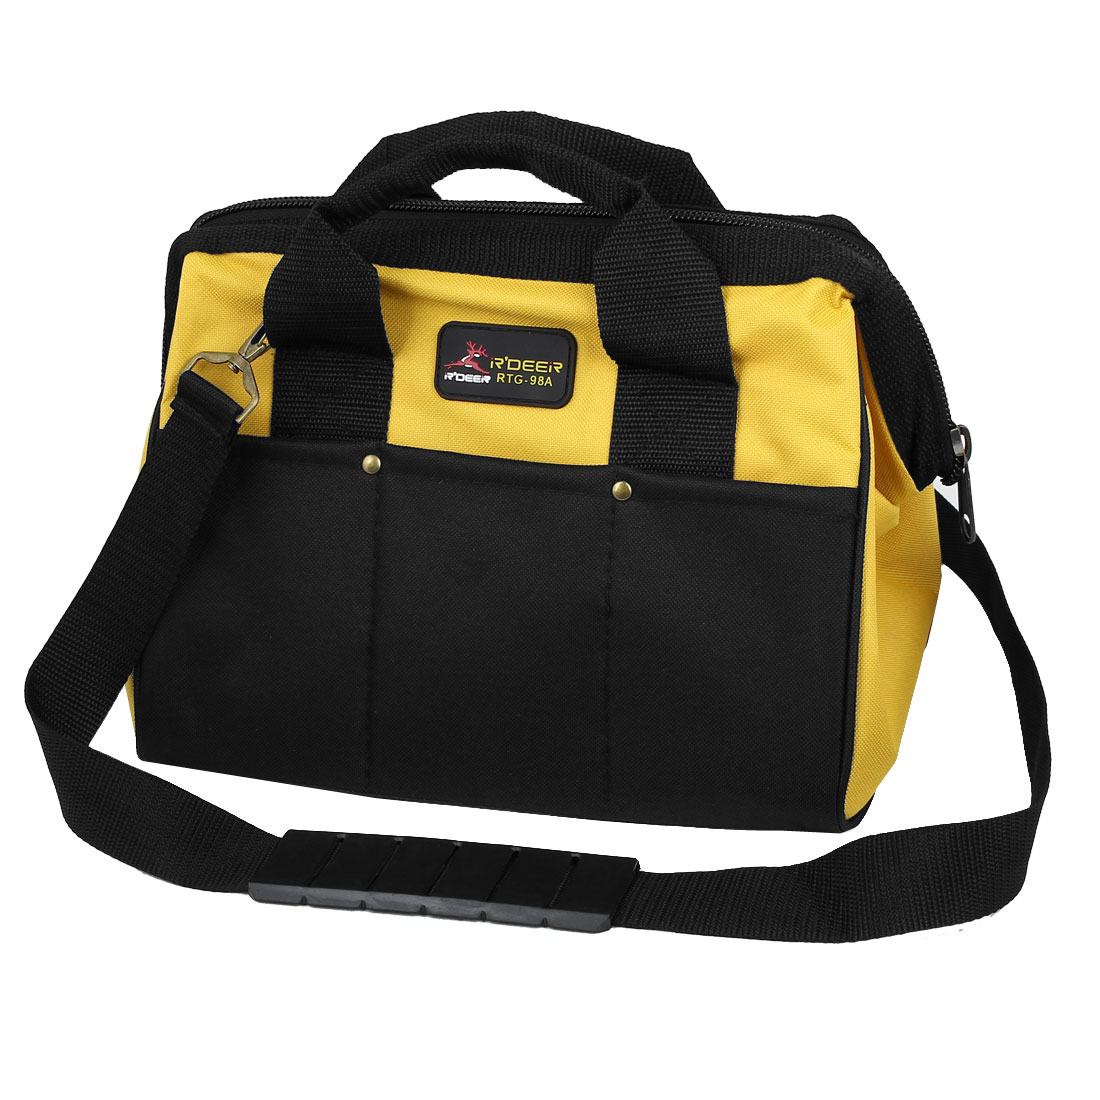 RTG-98A Oxford Cloth Multi Funtional Shoulder Strap Tool Bag